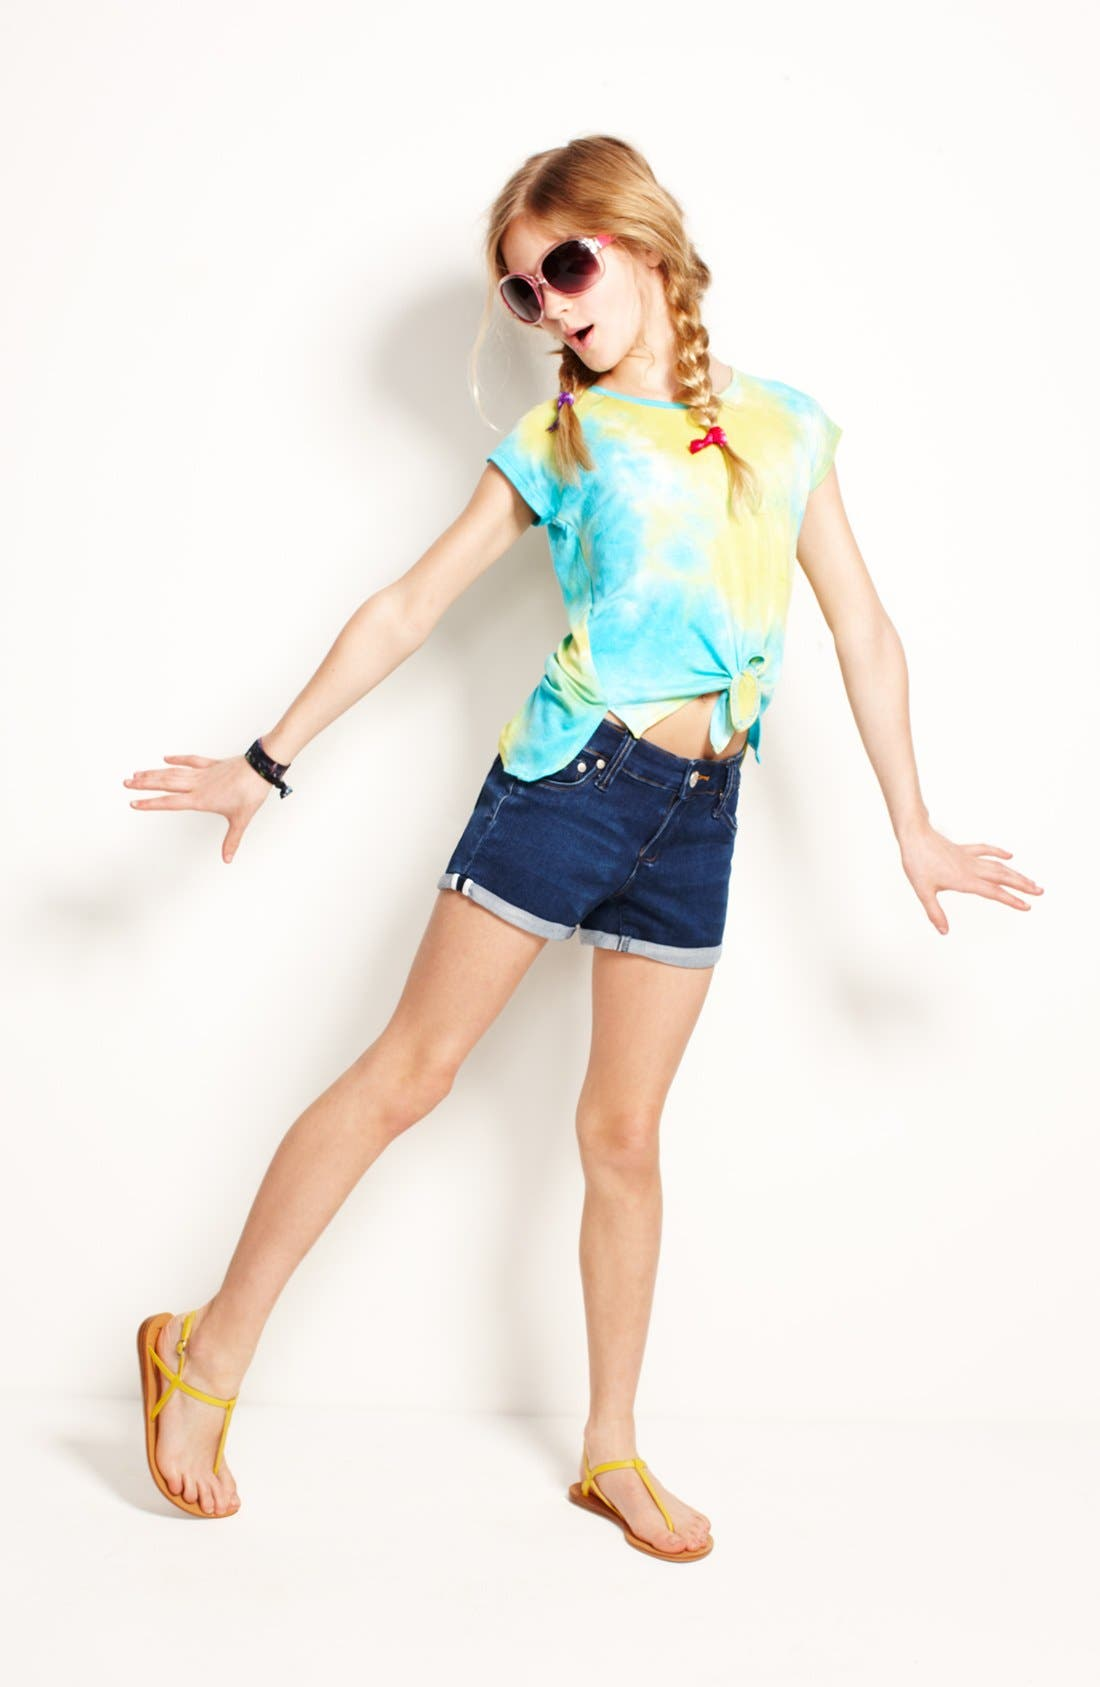 Main Image - Mia Chica Top & Tractr Shorts (Big Girls)